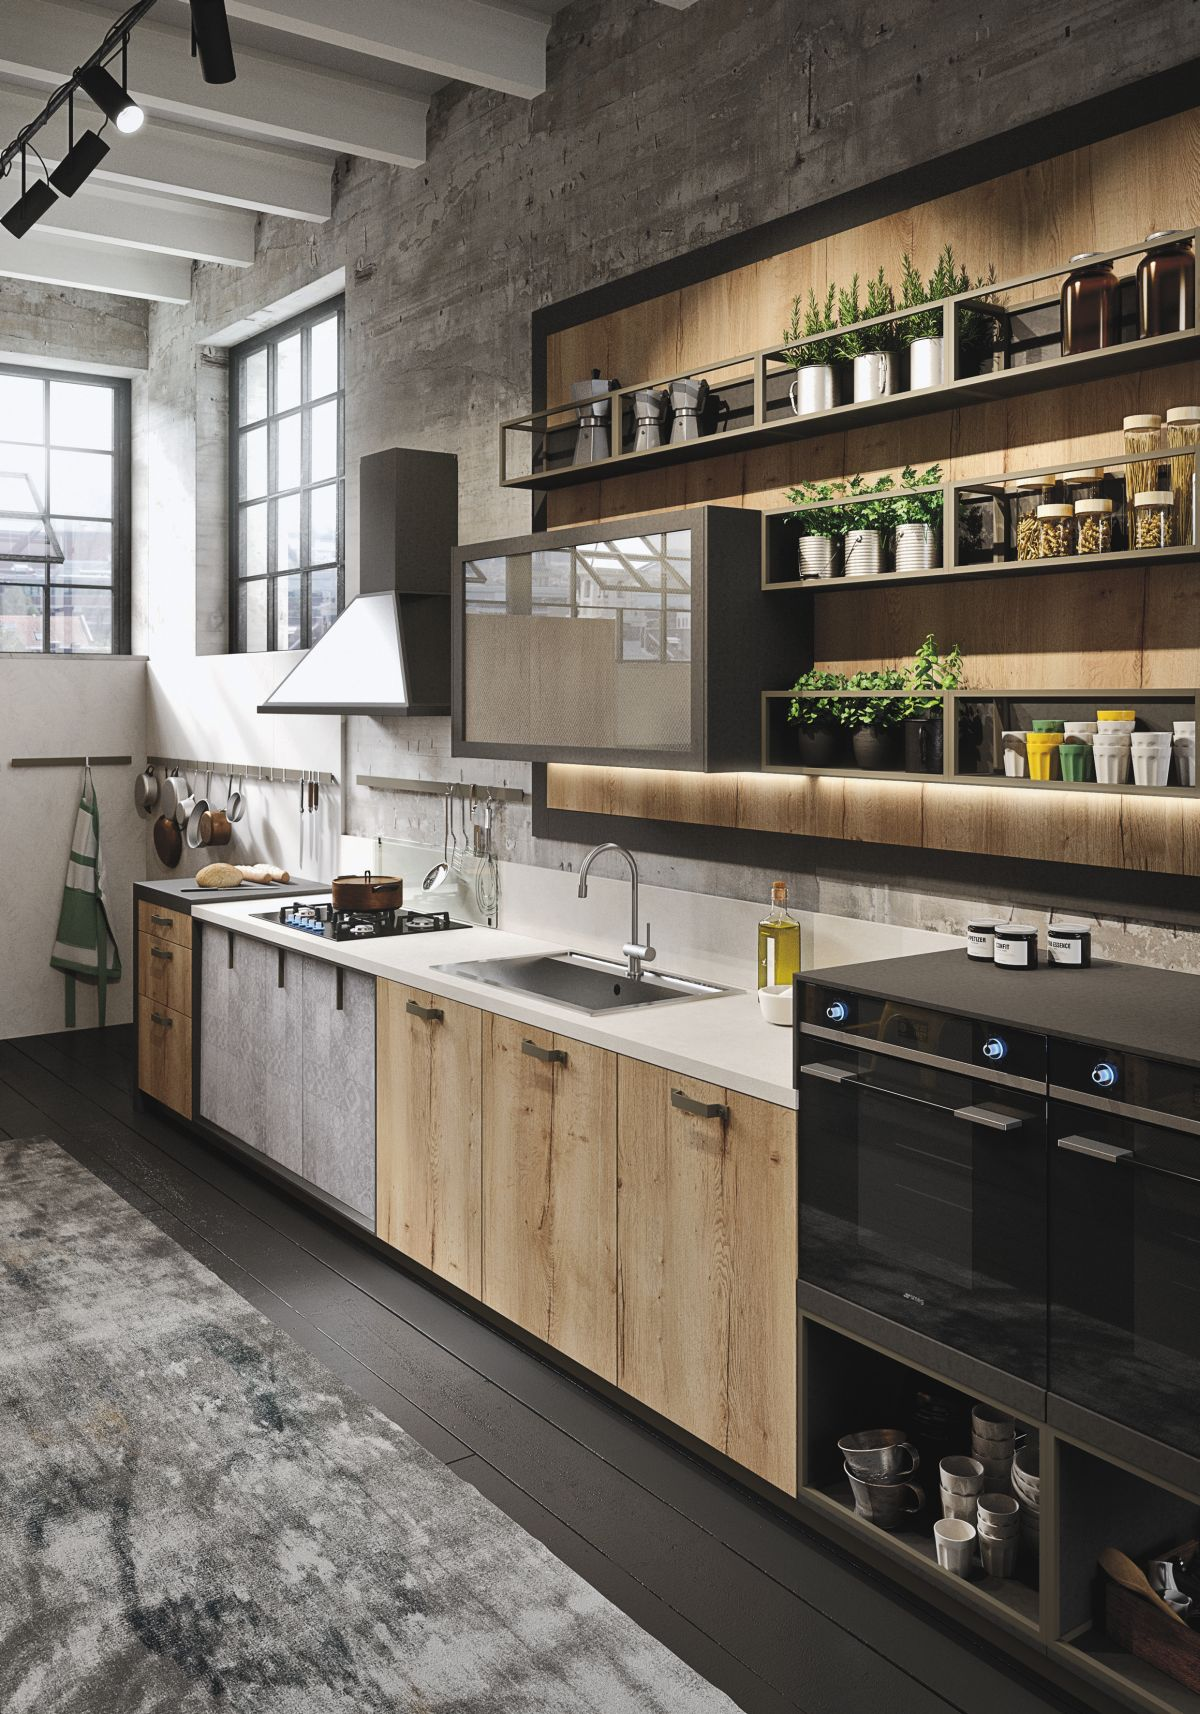 Industiral and rustic loft kitchen by snaidero digsdigs Industrial design kitchen ideas